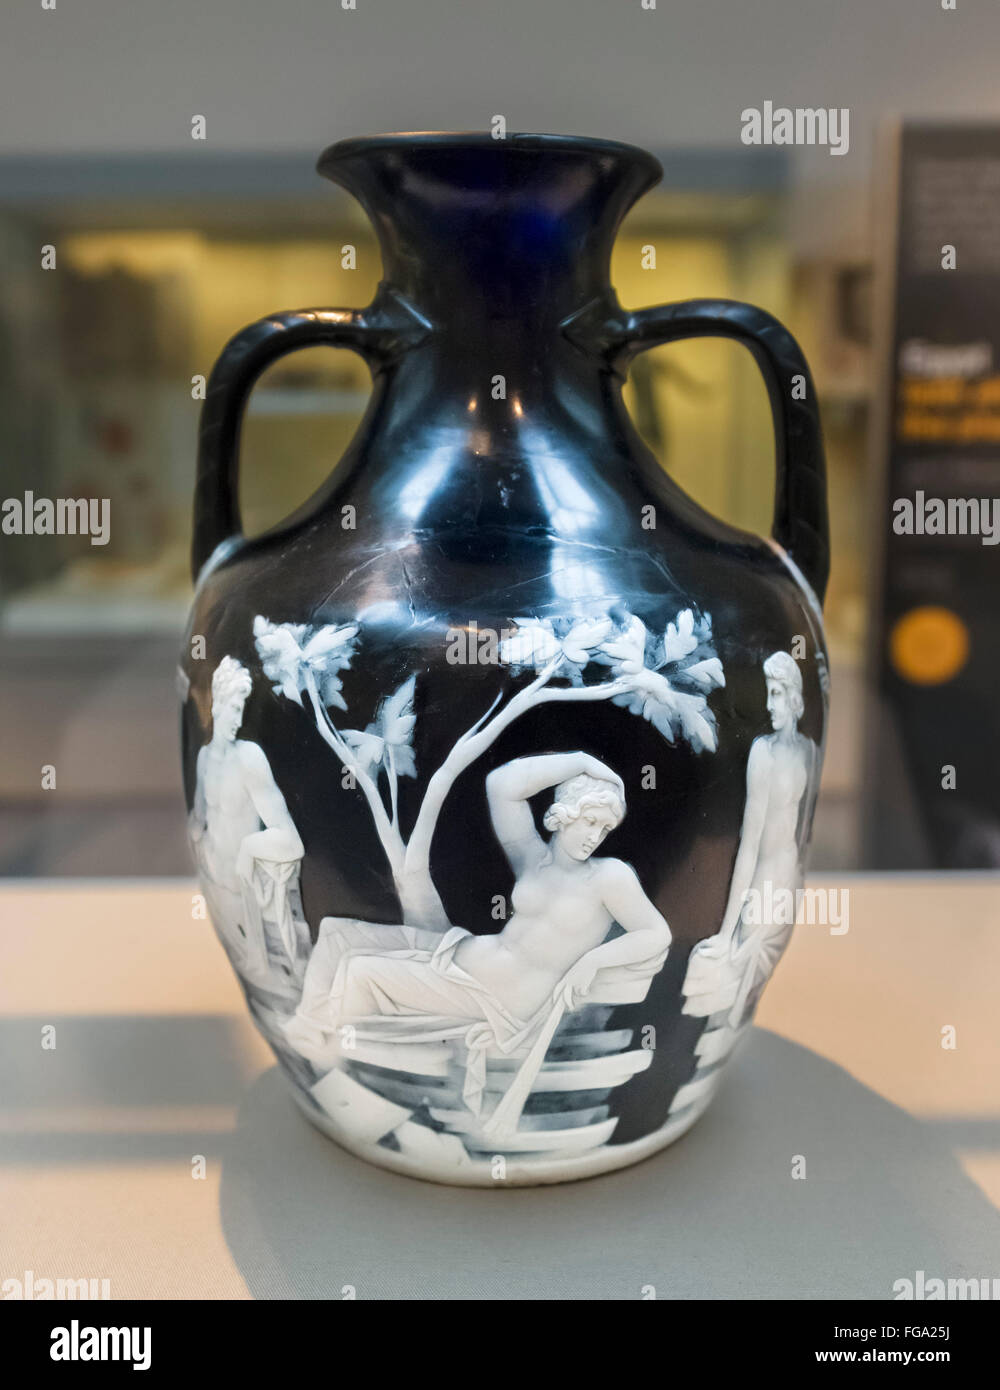 The Portland Vase, a Roman cameo glass vase made between 15 BC and AD 25, Wolfson Gallery, British Museum, London, - Stock Image